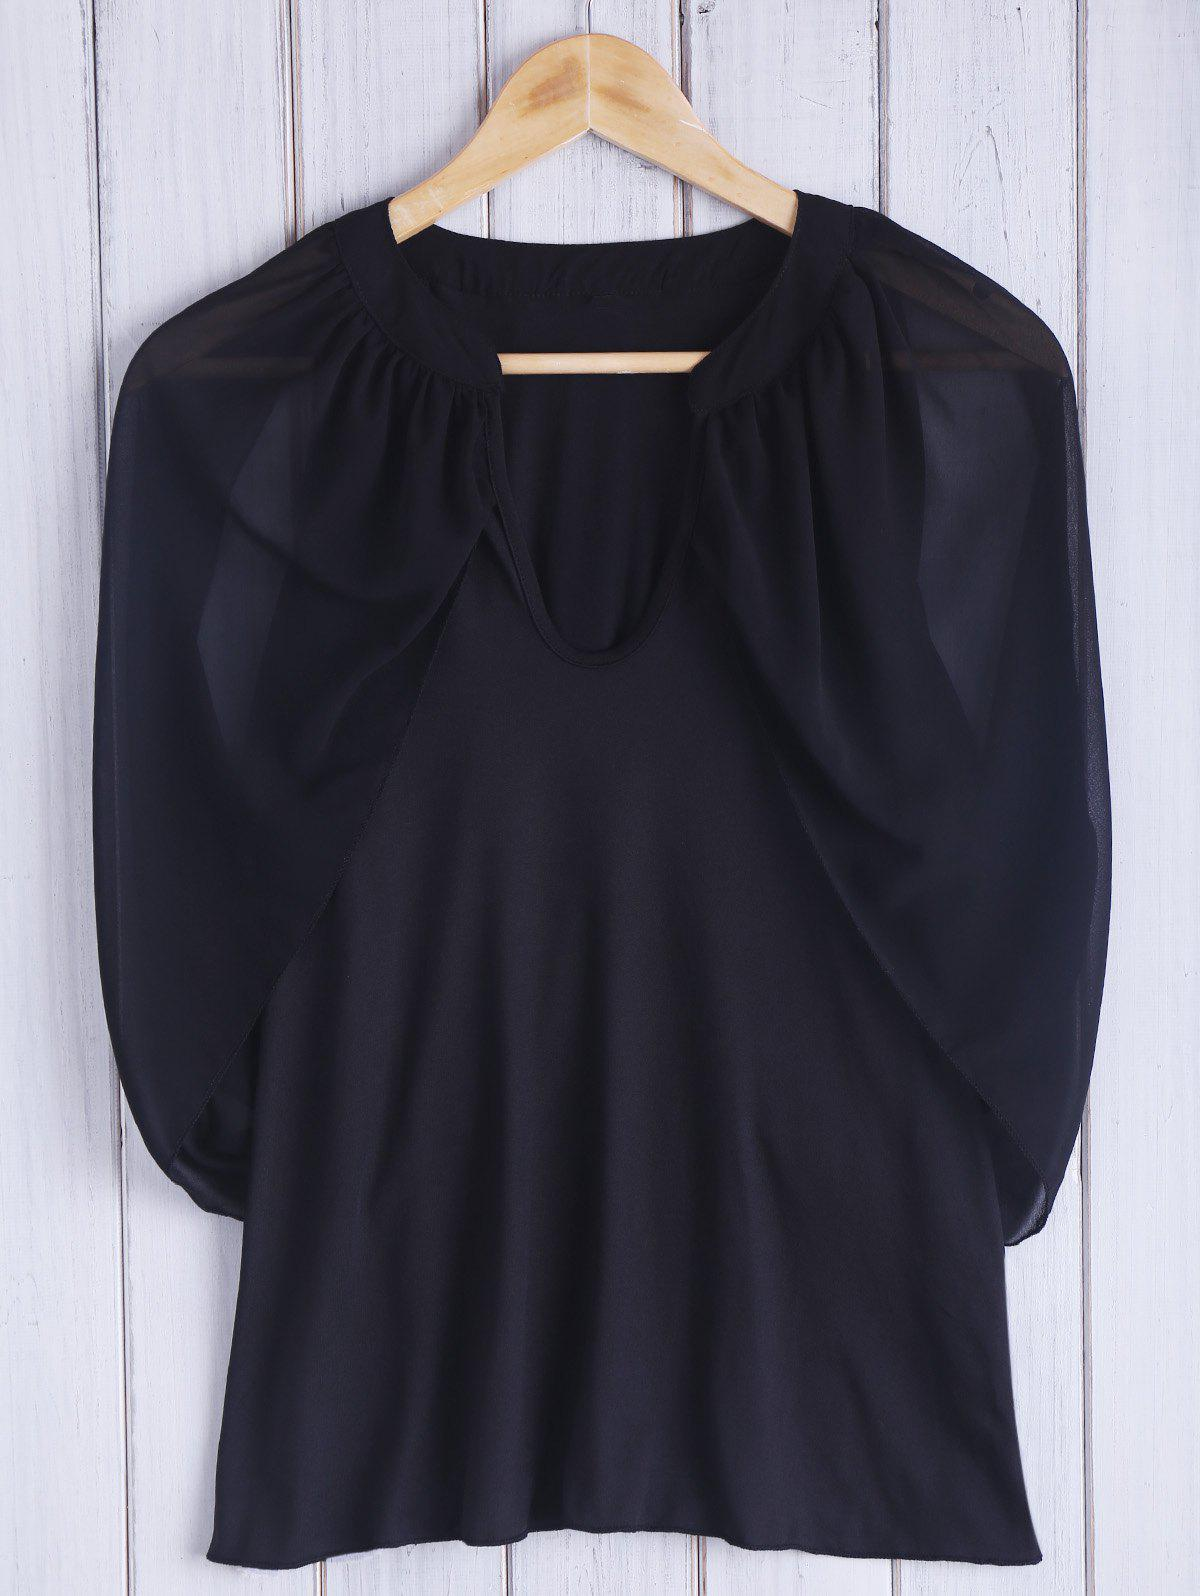 Chic Keyhole Neck 3/4 Sleeve Black Cold Shoulder See-Through Women's Blouse - BLACK S